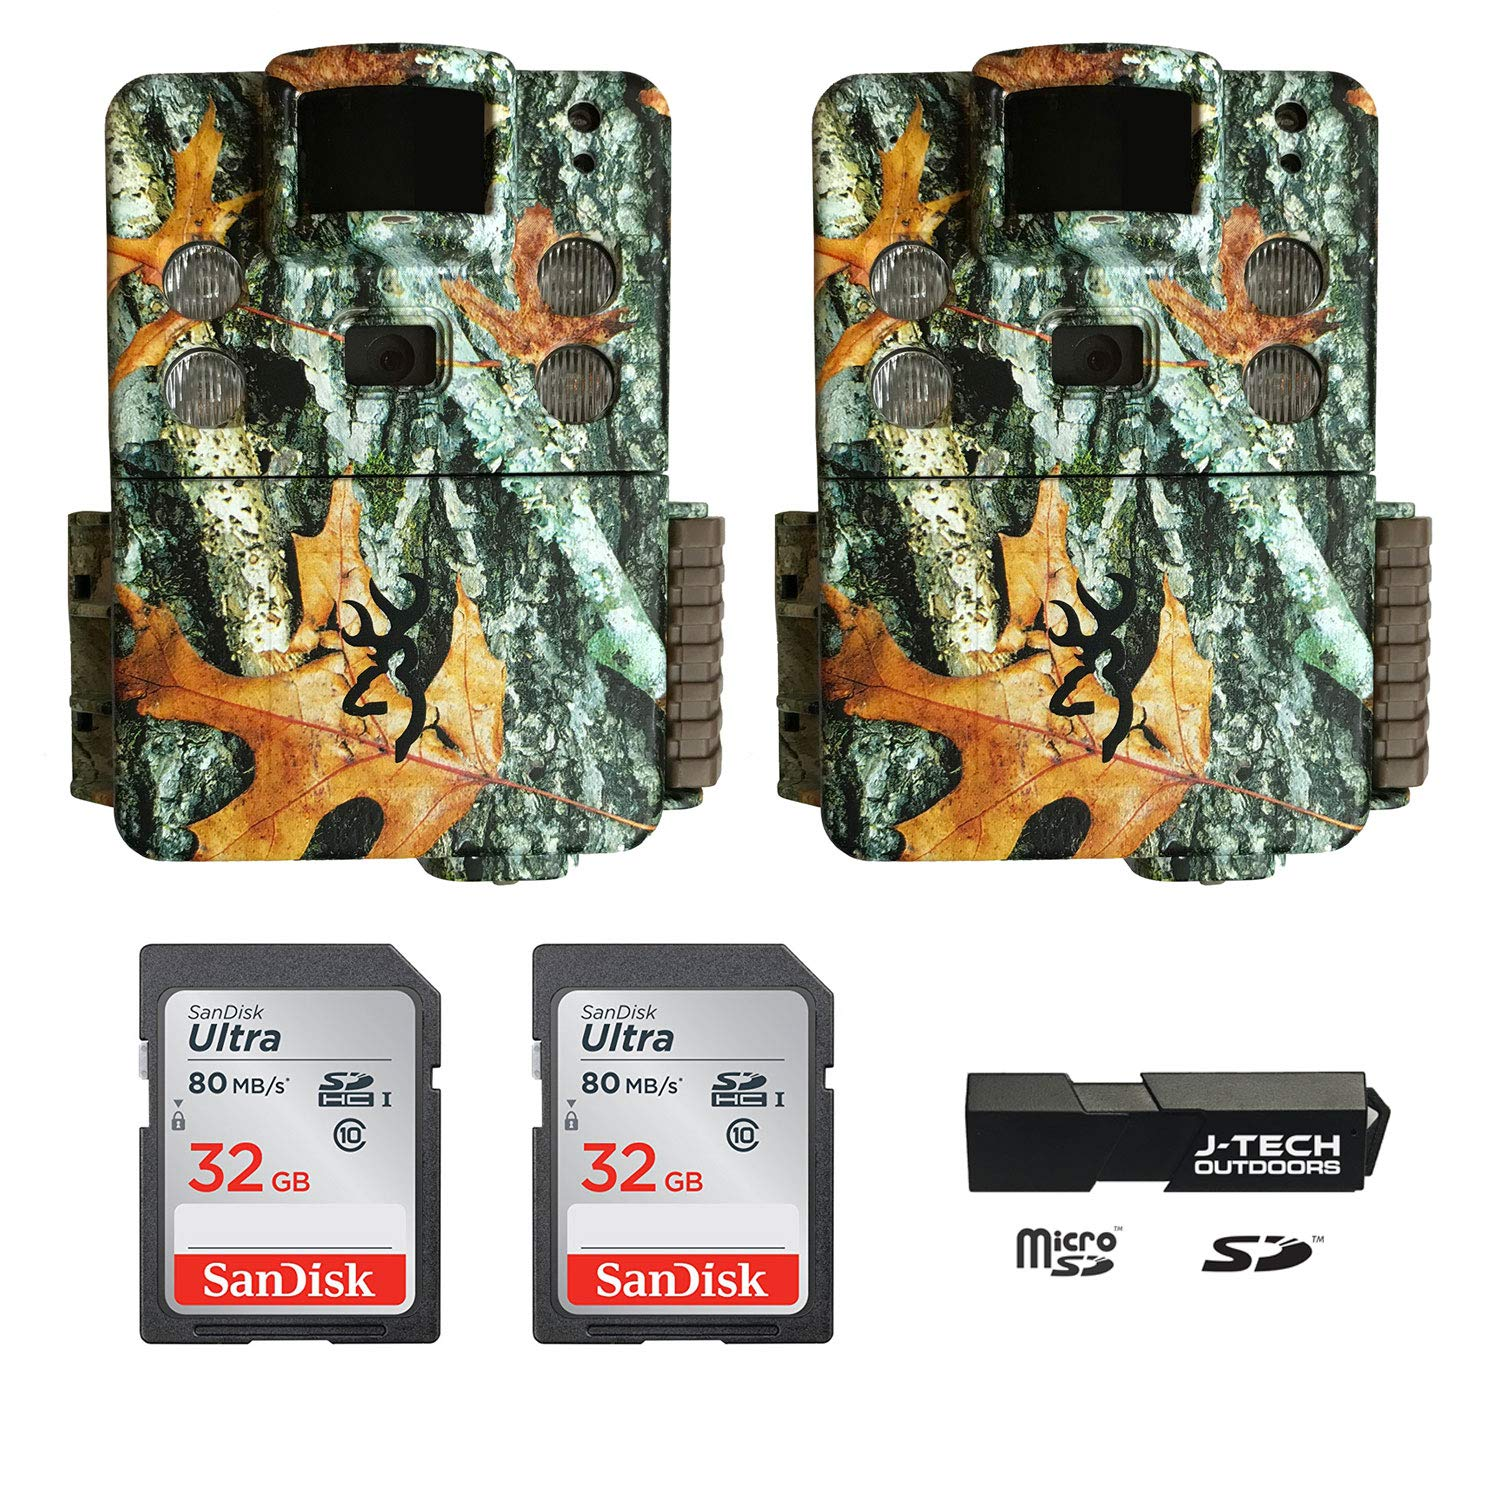 (2) Browning Strike Force HD PRO X (2019) Trail Game Cameras Bundle Includes 32GB Memory Cards and J-TECH Card Reader (20MP) | BTC5HDPX by Browning Trail Cameras